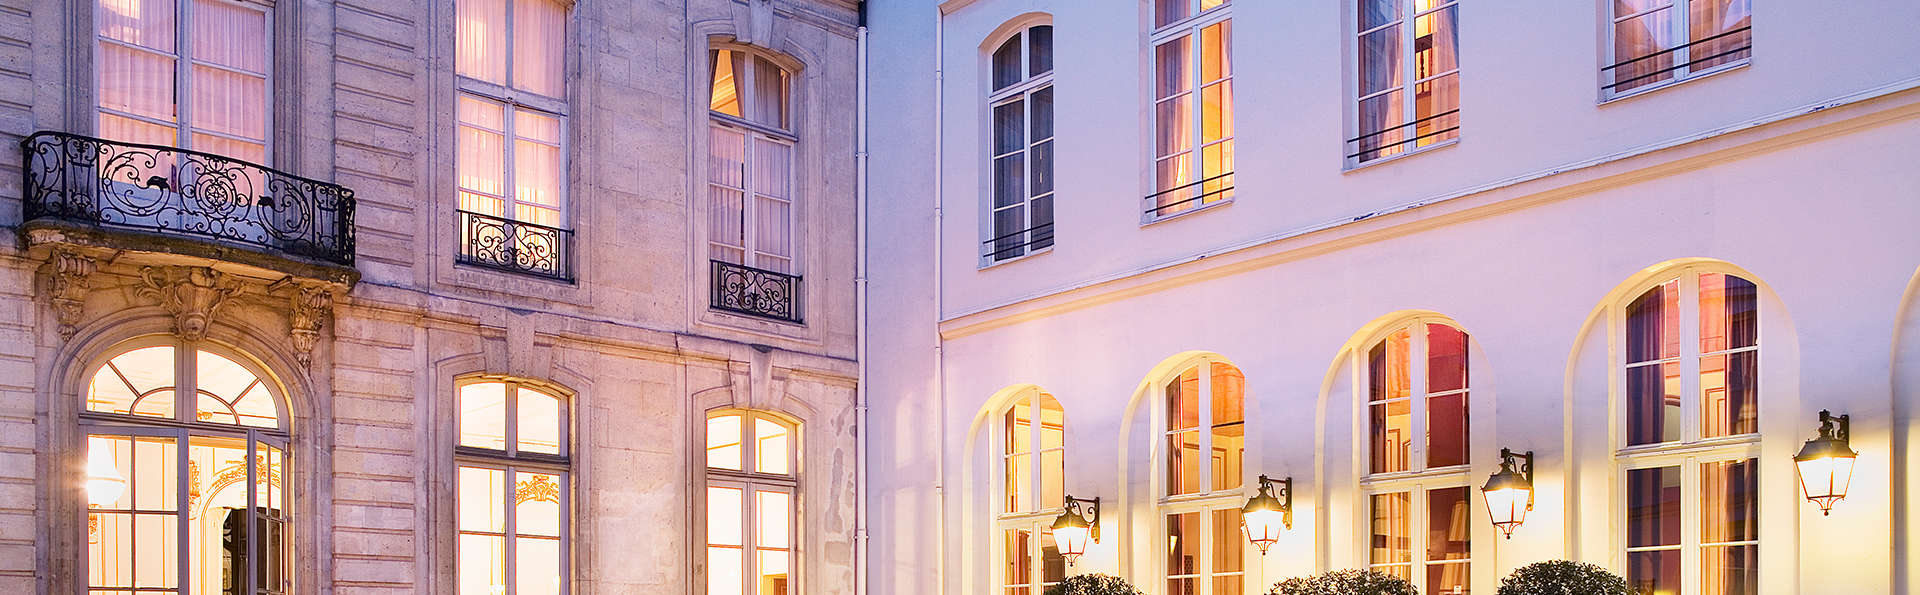 Saint James Albany Paris Hotel Spa - Edit_Front2.jpg